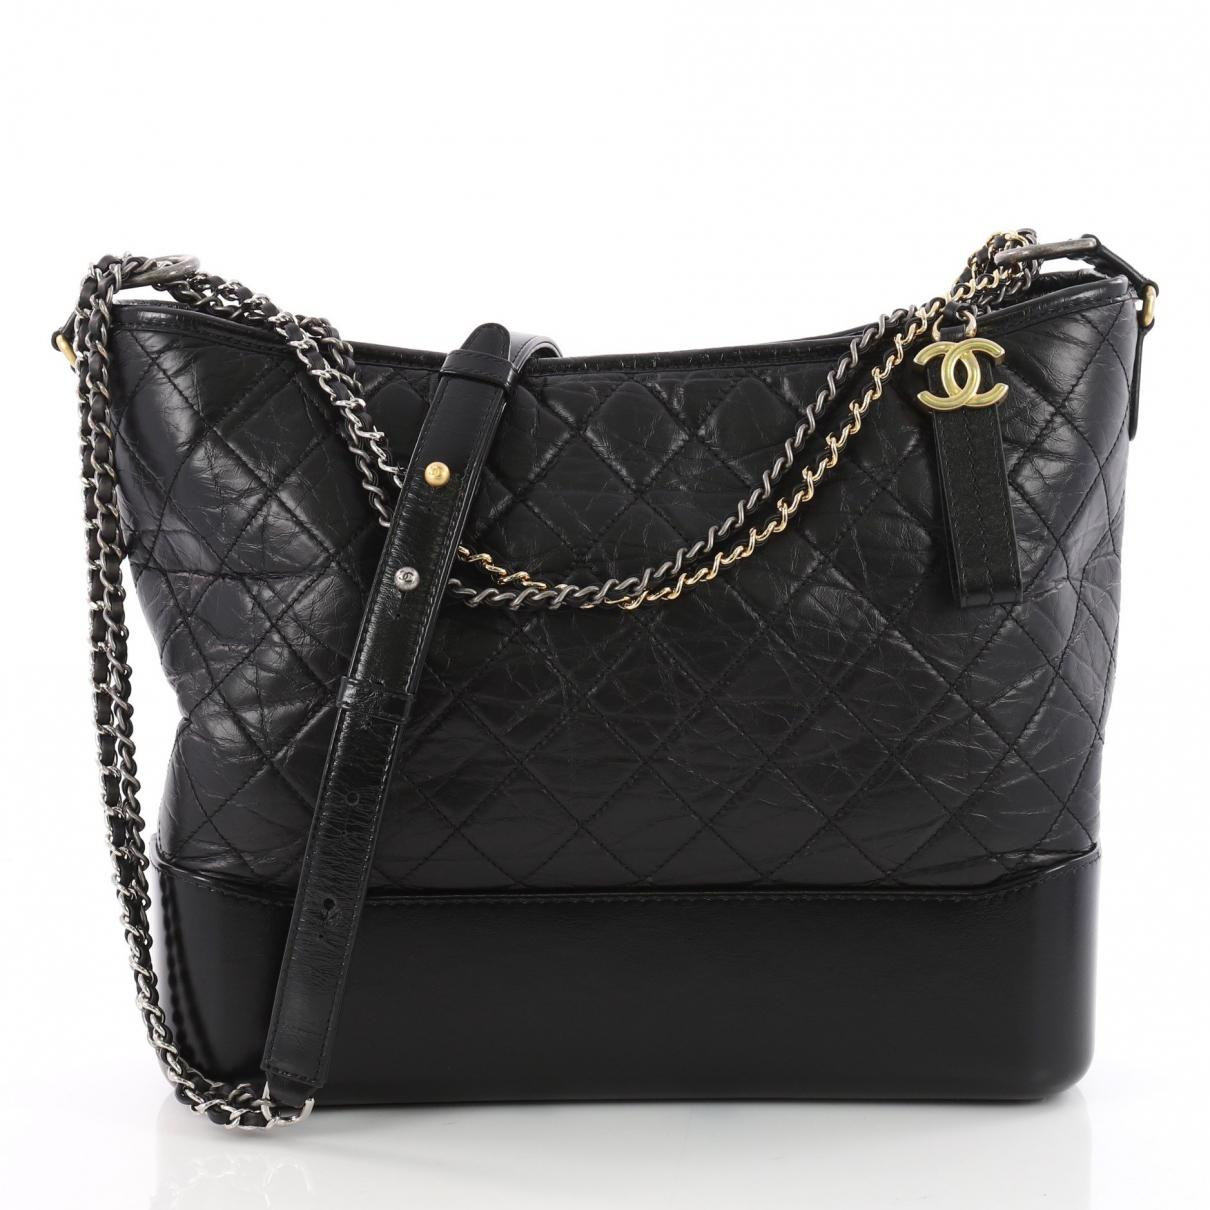 1a5634dc3813 Lyst - Chanel Pre-owned Gabrielle Leather Crossbody Bag in Black